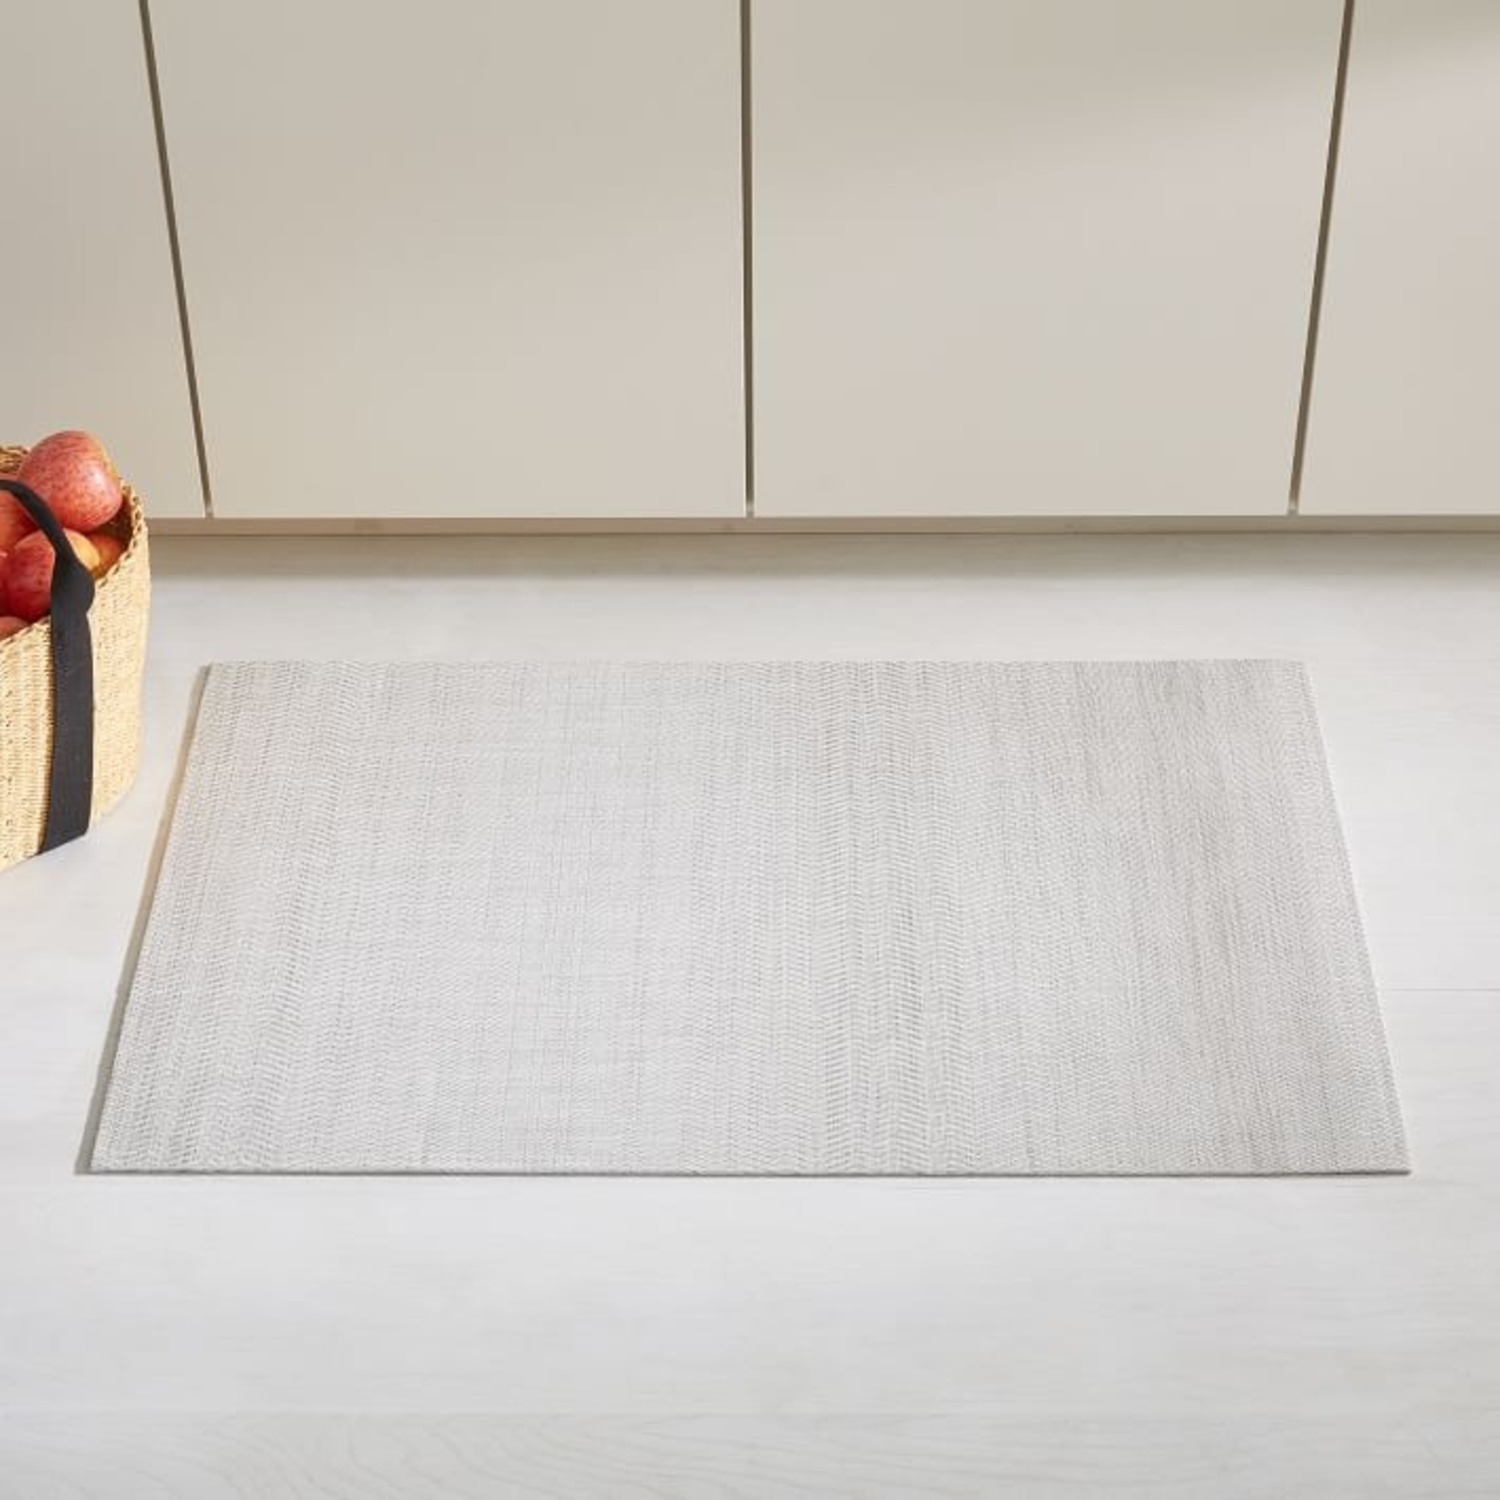 West Elm Chilewich Wave Woven Floormat - image-2